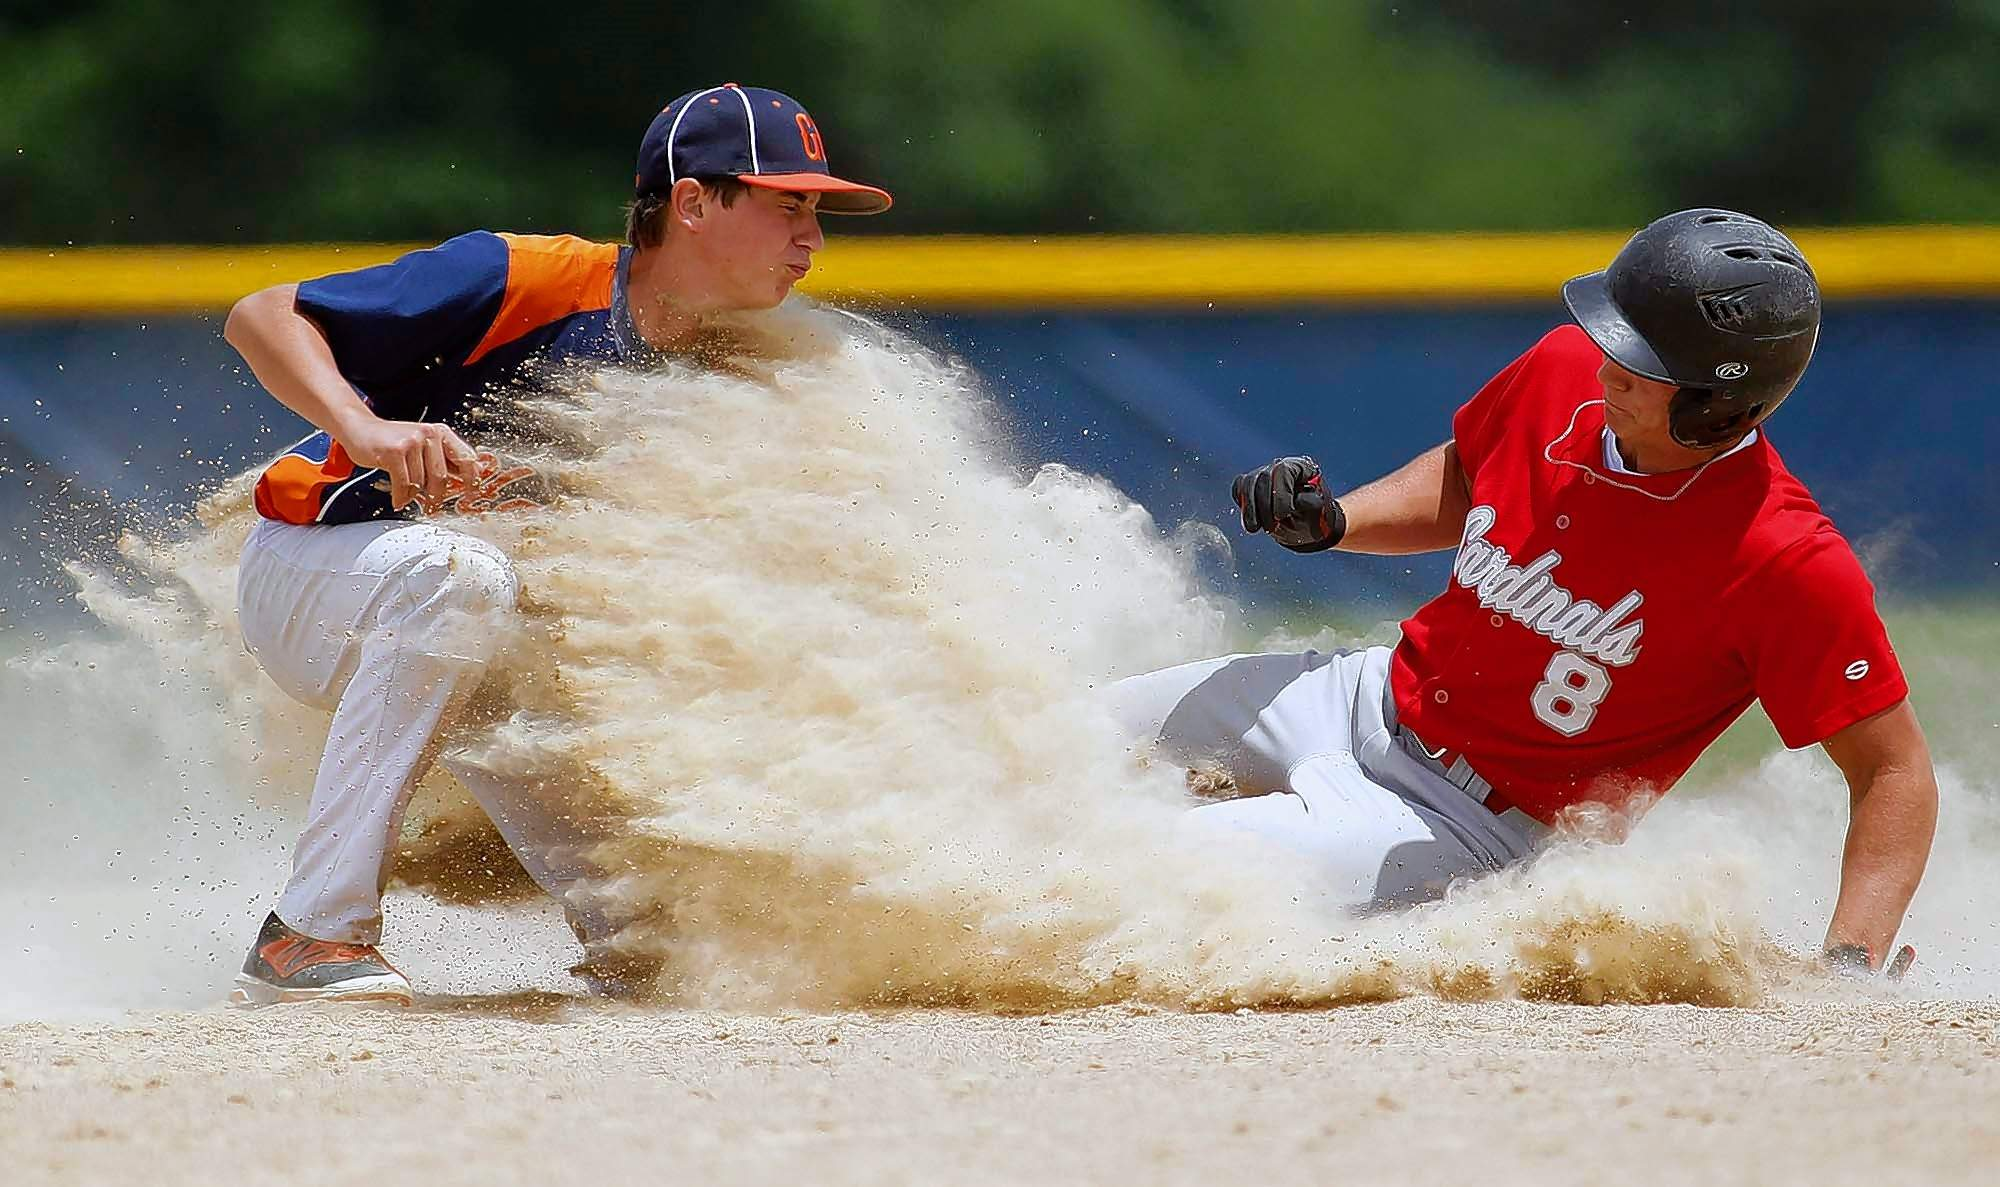 Safe or out? Michael Dann's shot of Grant Bosaw of Gallatin County making the tag on Chase Sutton of Norris City-Omaha-Enfield, won first place in The Associated Press Division I photo contest.